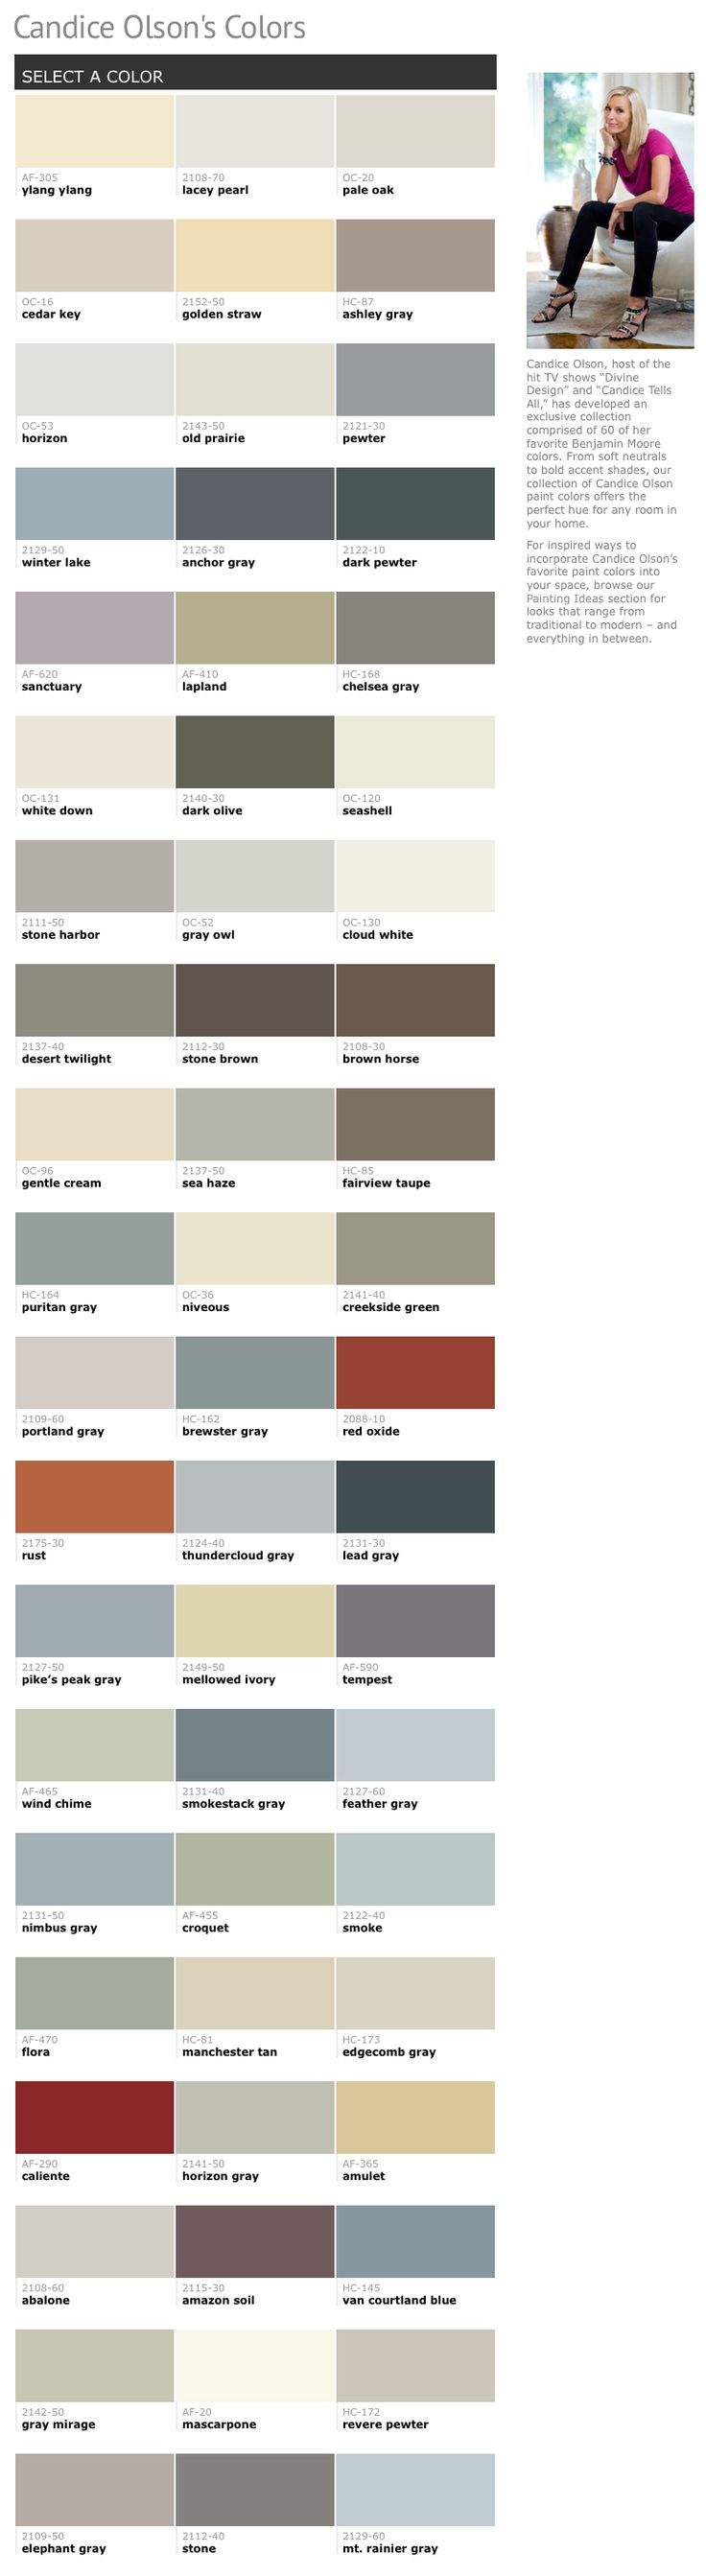 60 of Candice Olson's favorite Benjamin Moore paint colors